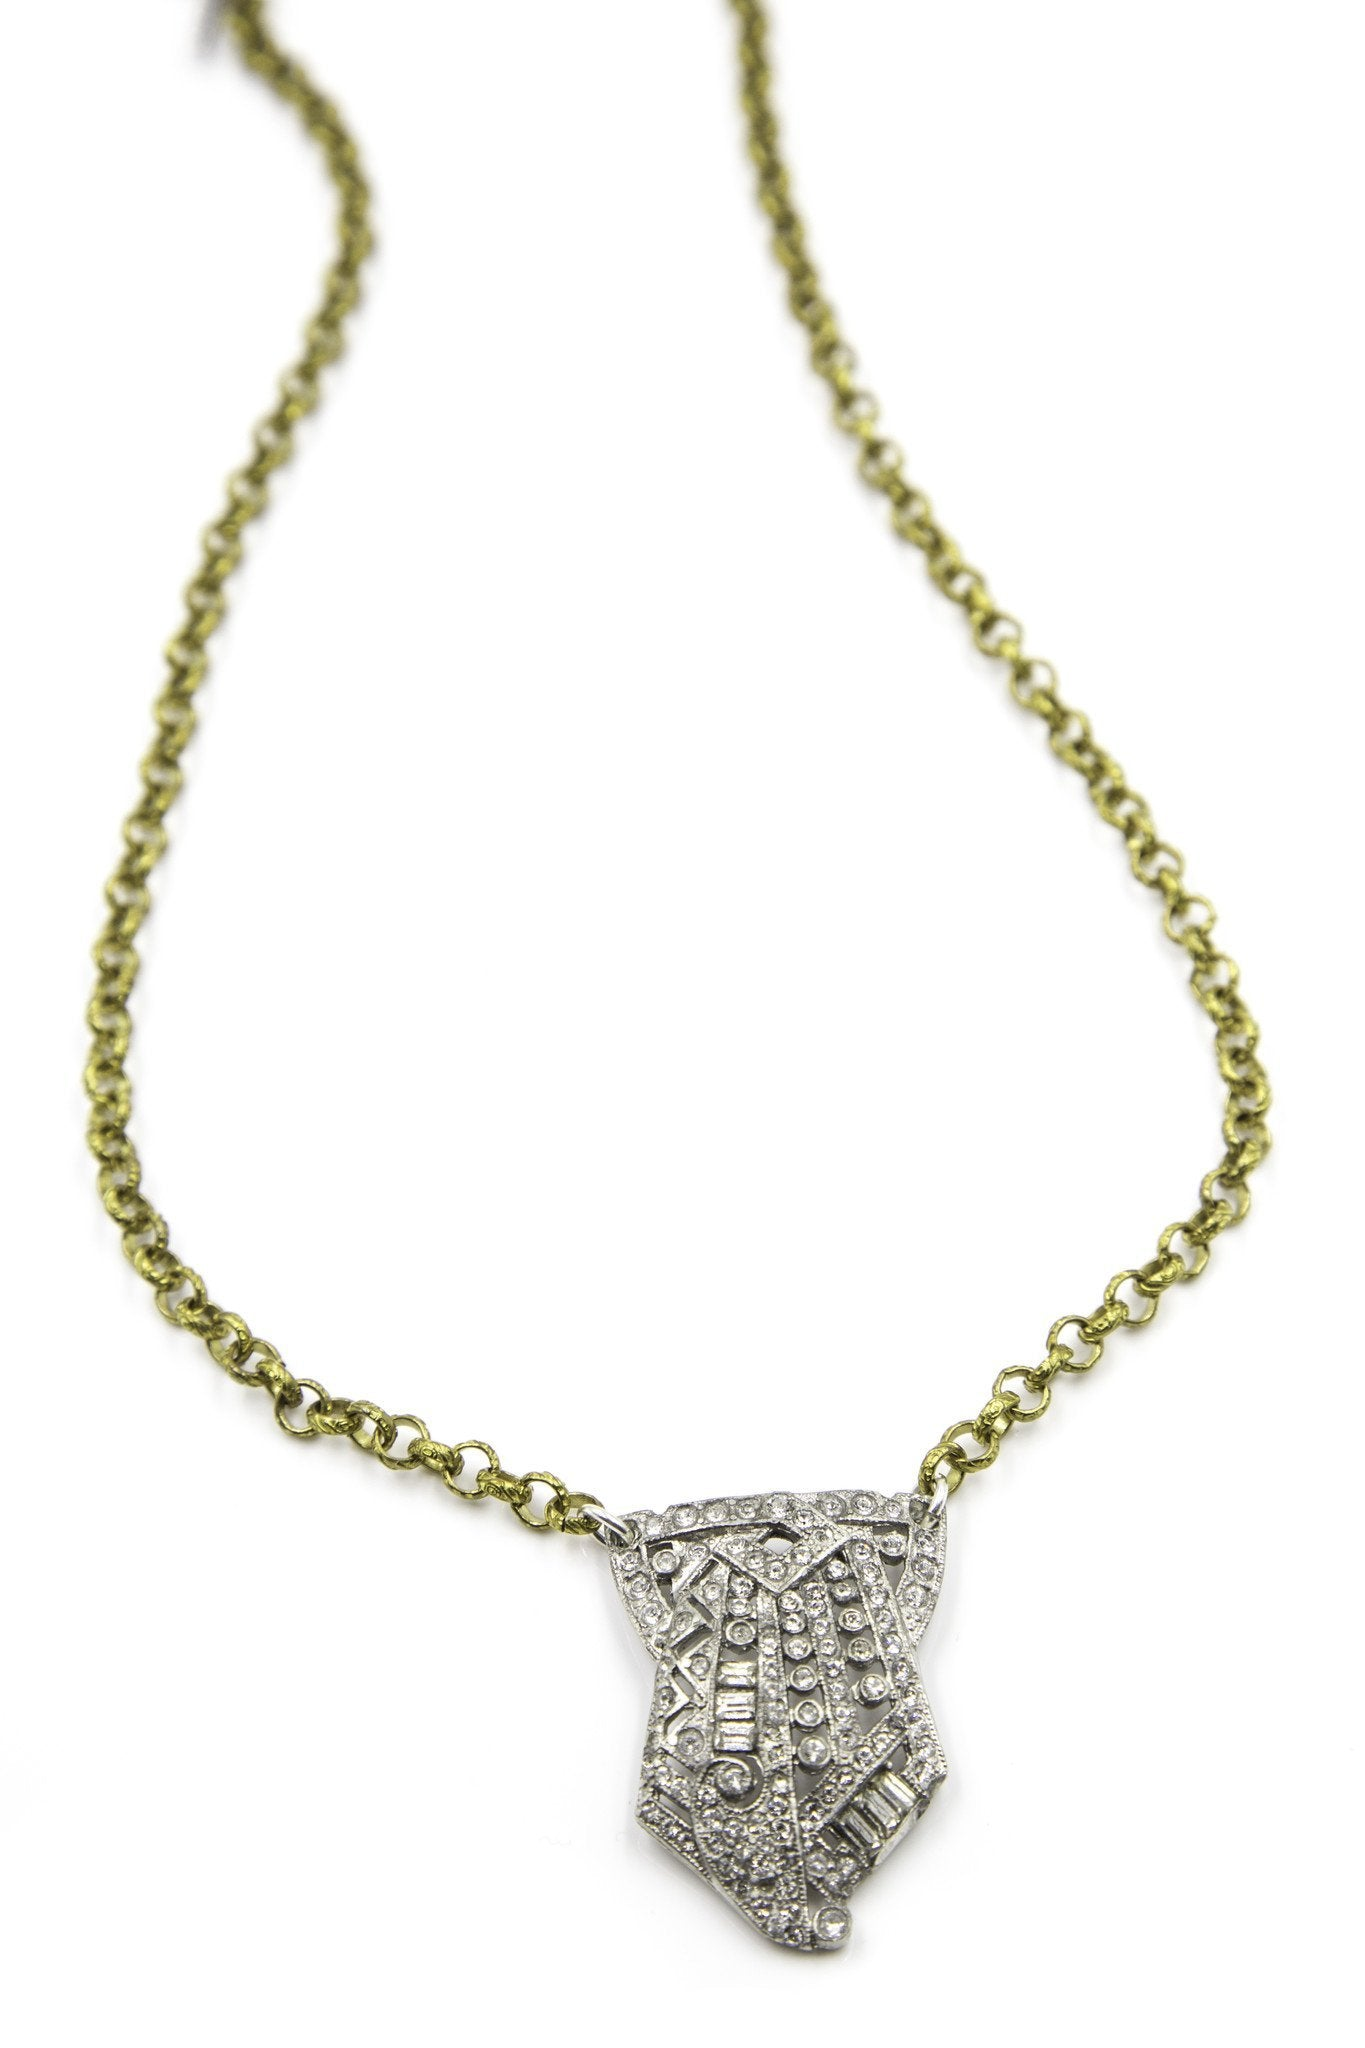 Load image into Gallery viewer, vintage delicate charm necklace in 14k gold